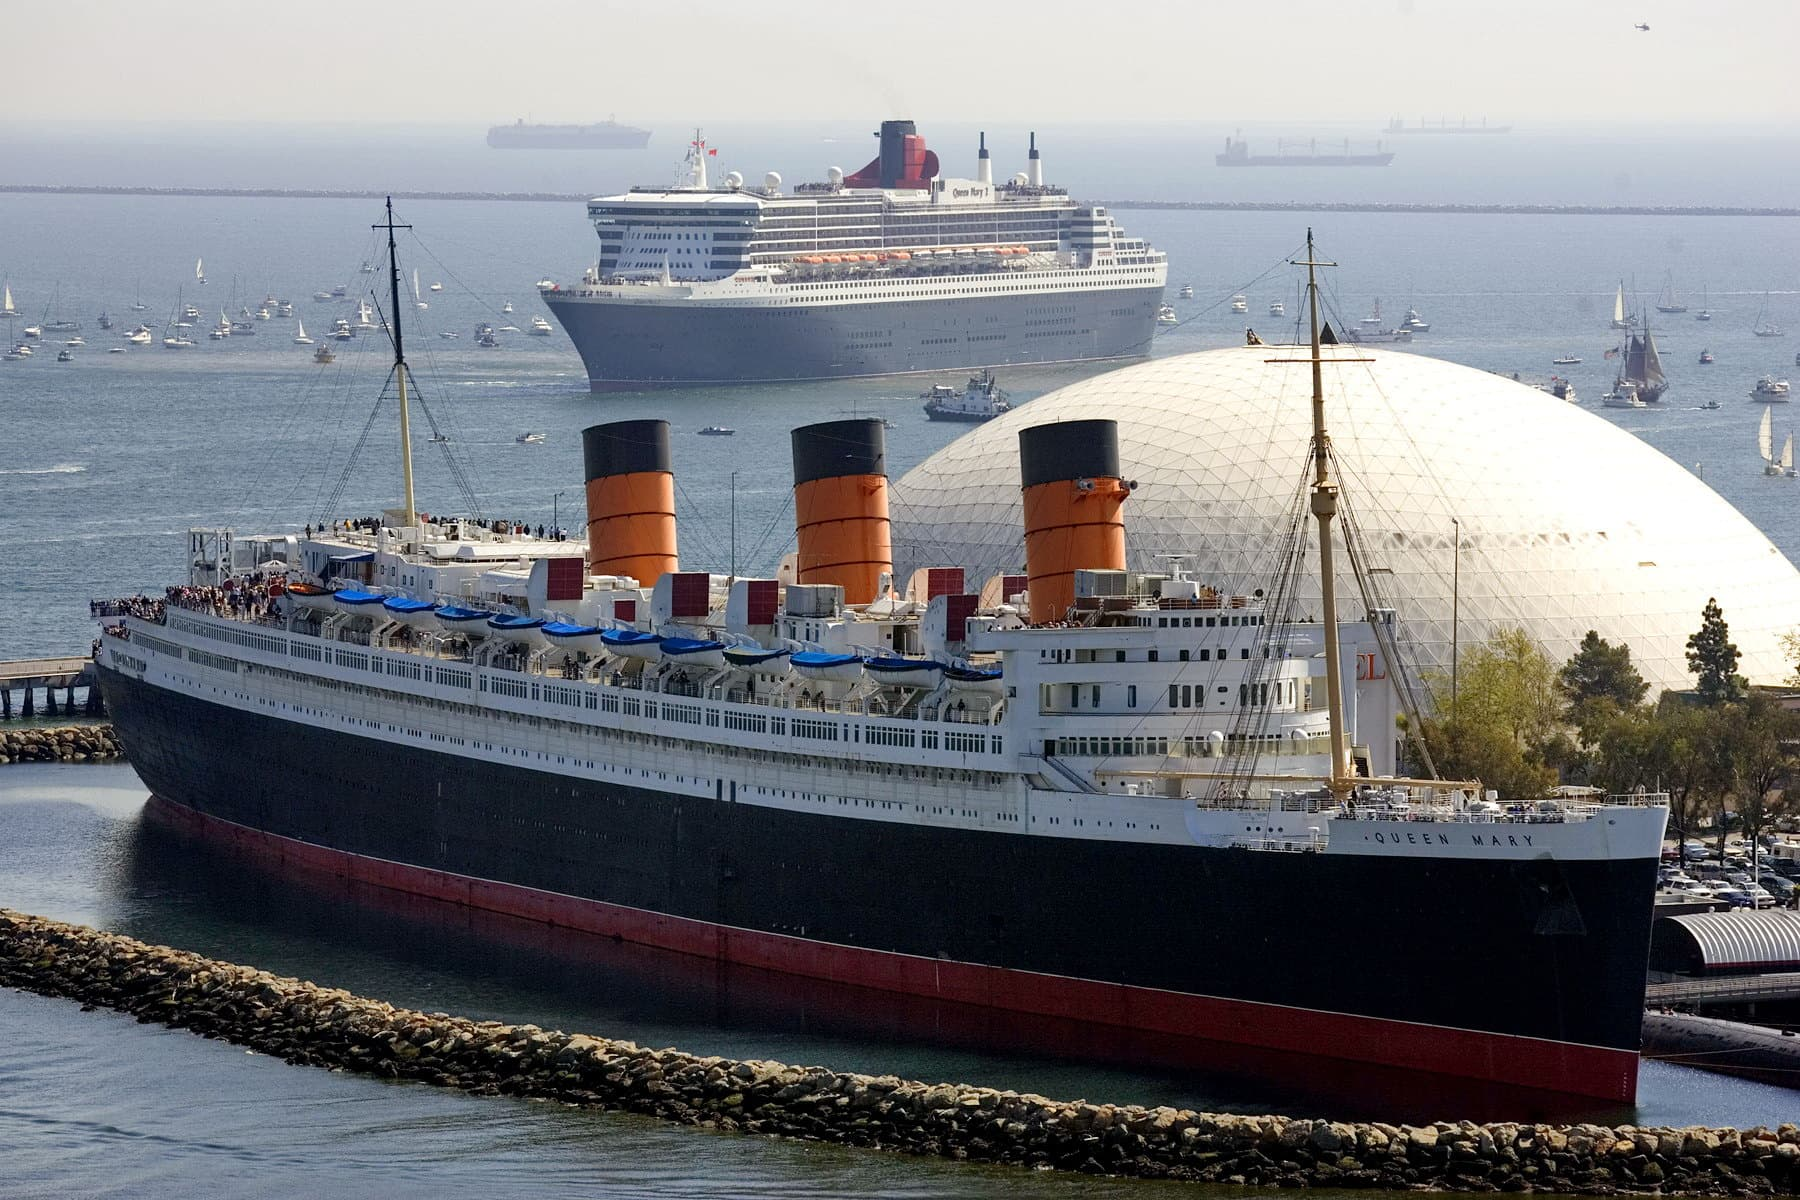 Two Queen Mary